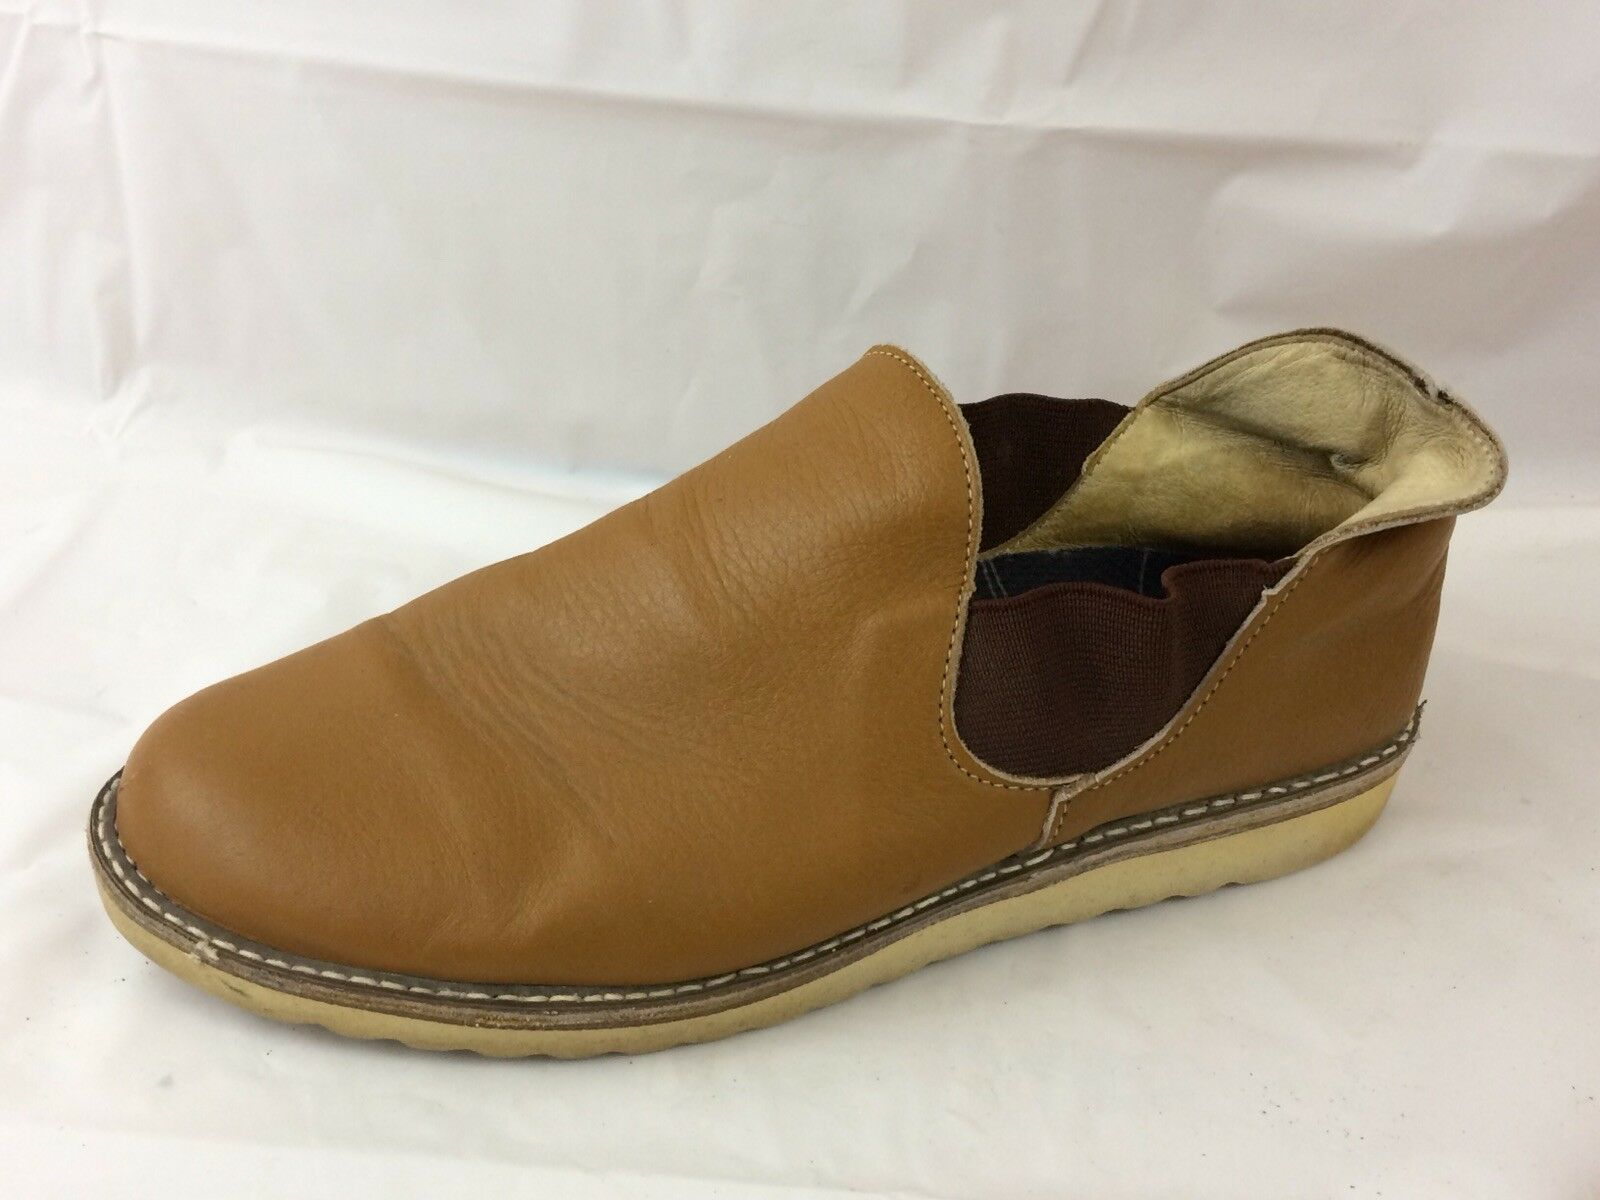 Vulcan Camel Brown Leather Mens 9.5 E WIDE Slip On Ankle Boots Casual Work Shoes